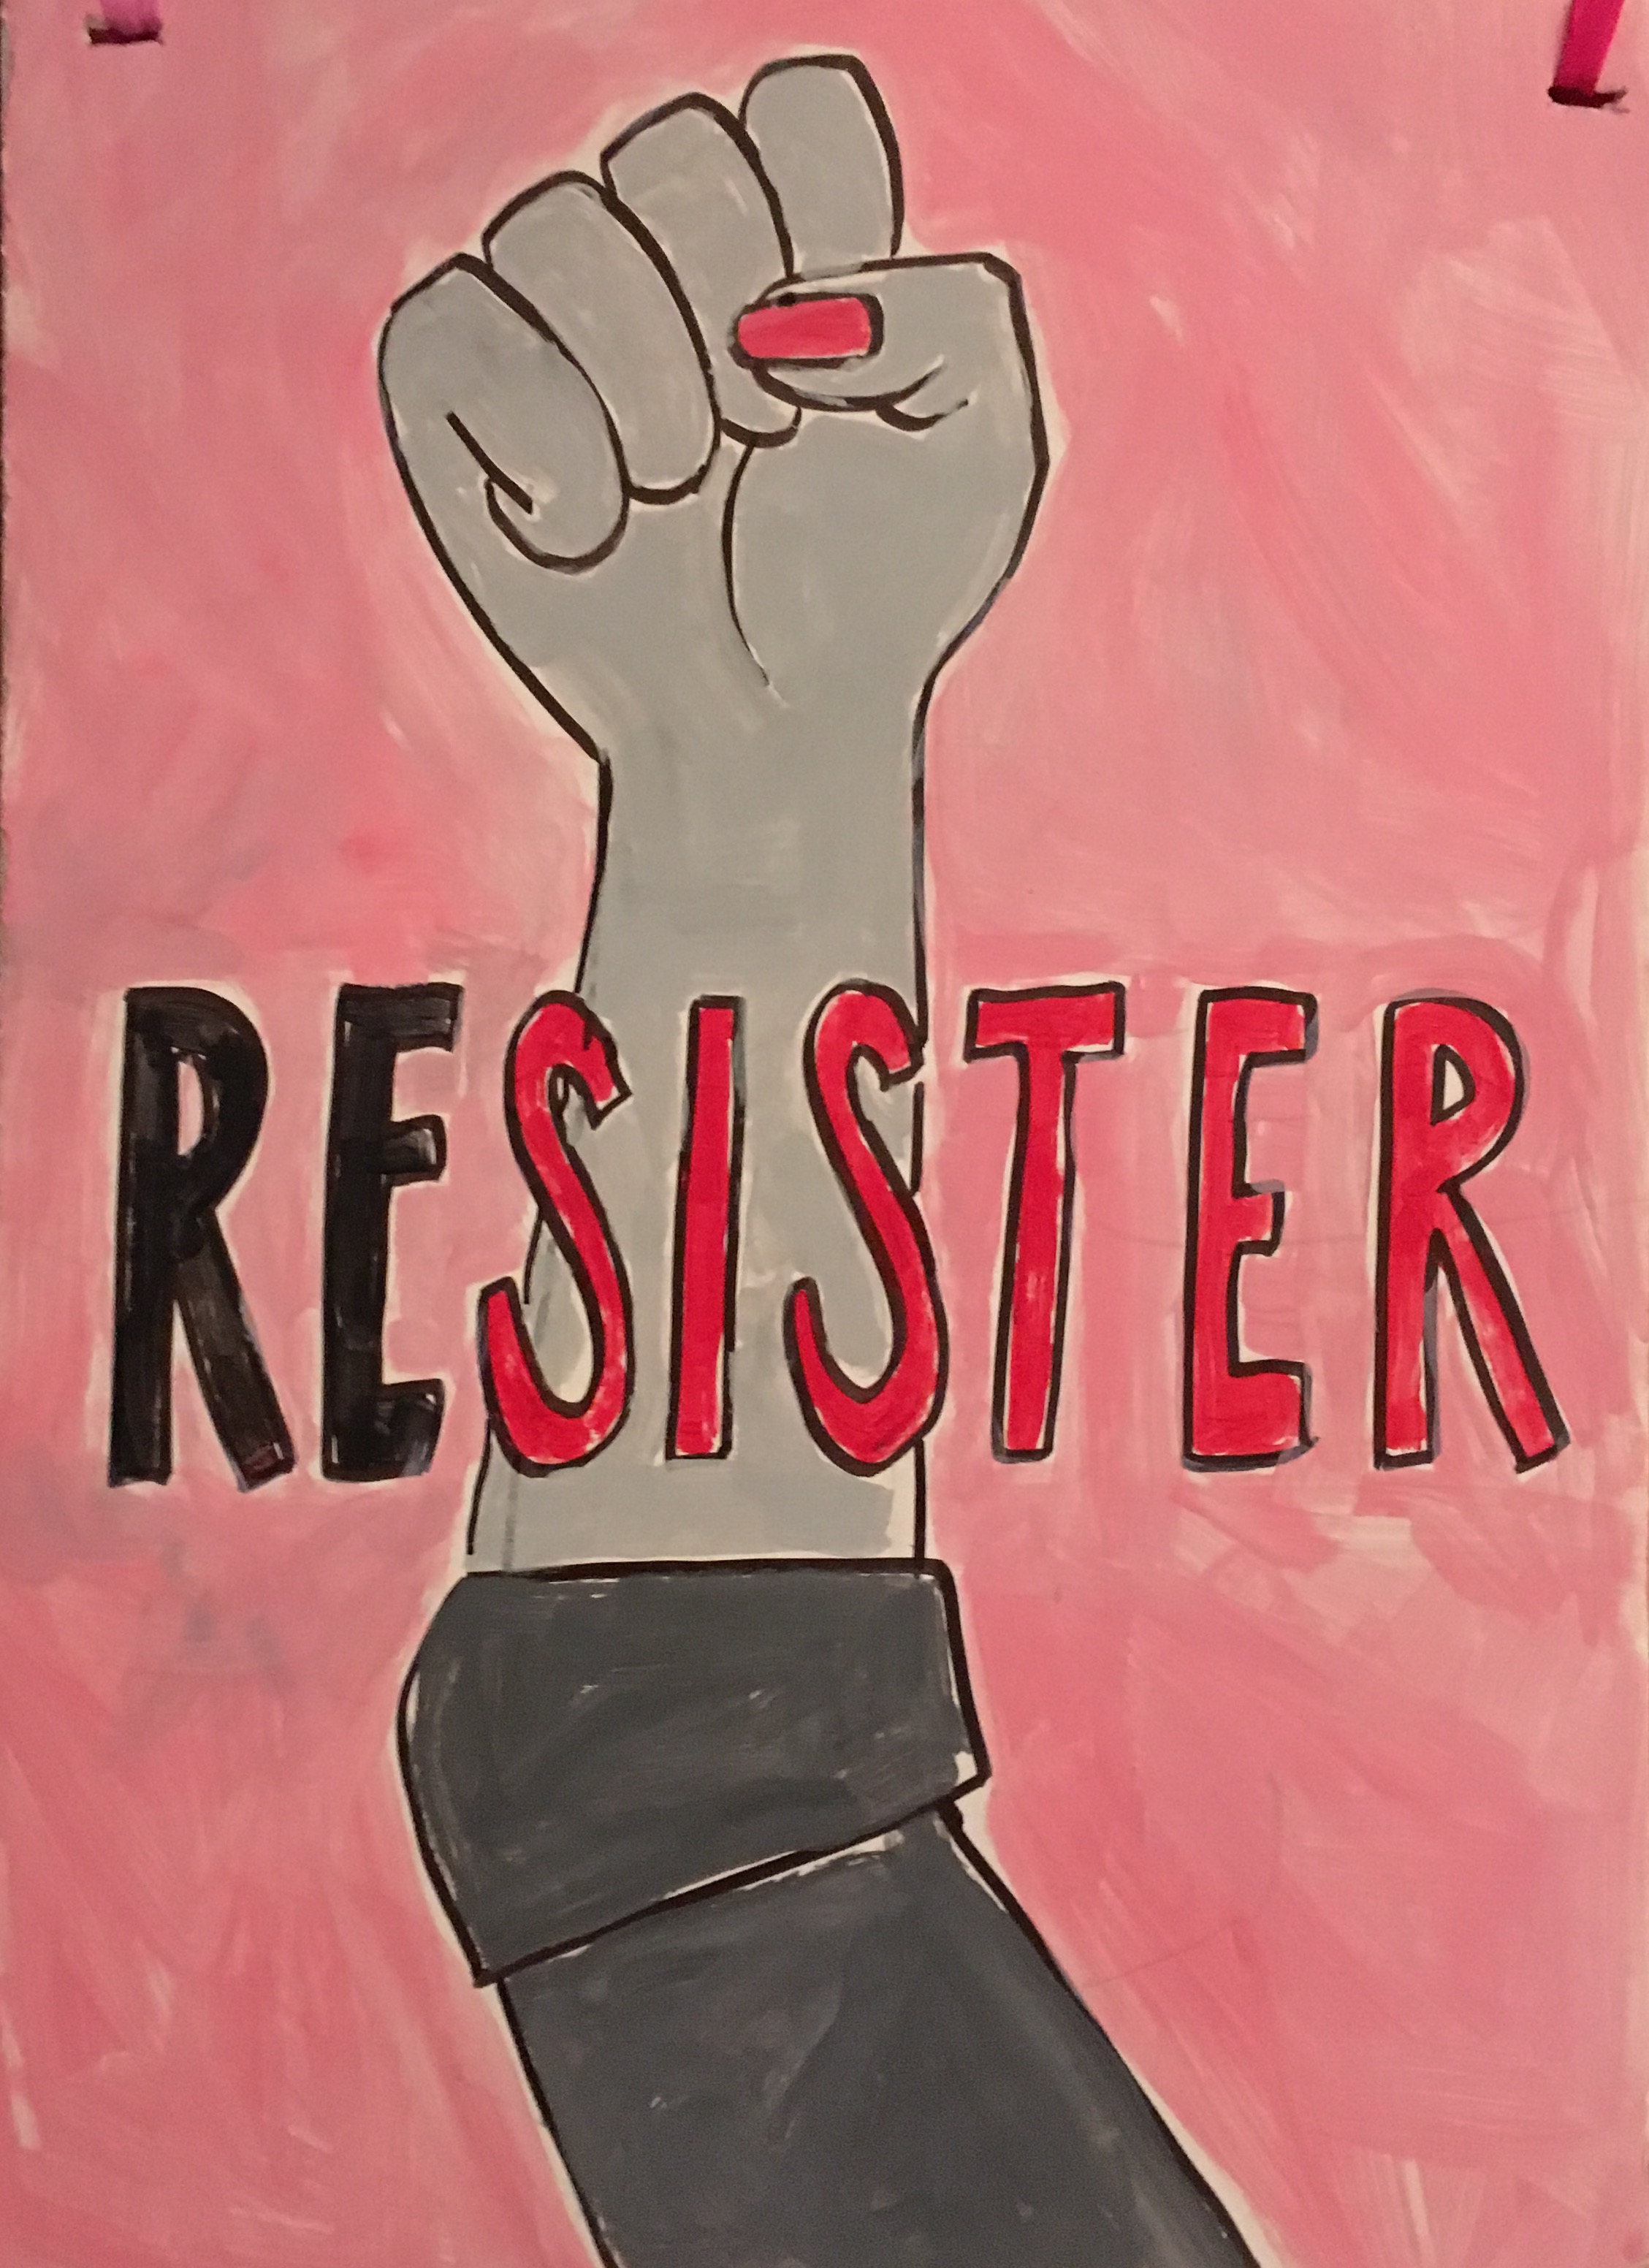 Resister Poster from 2017 Women's March